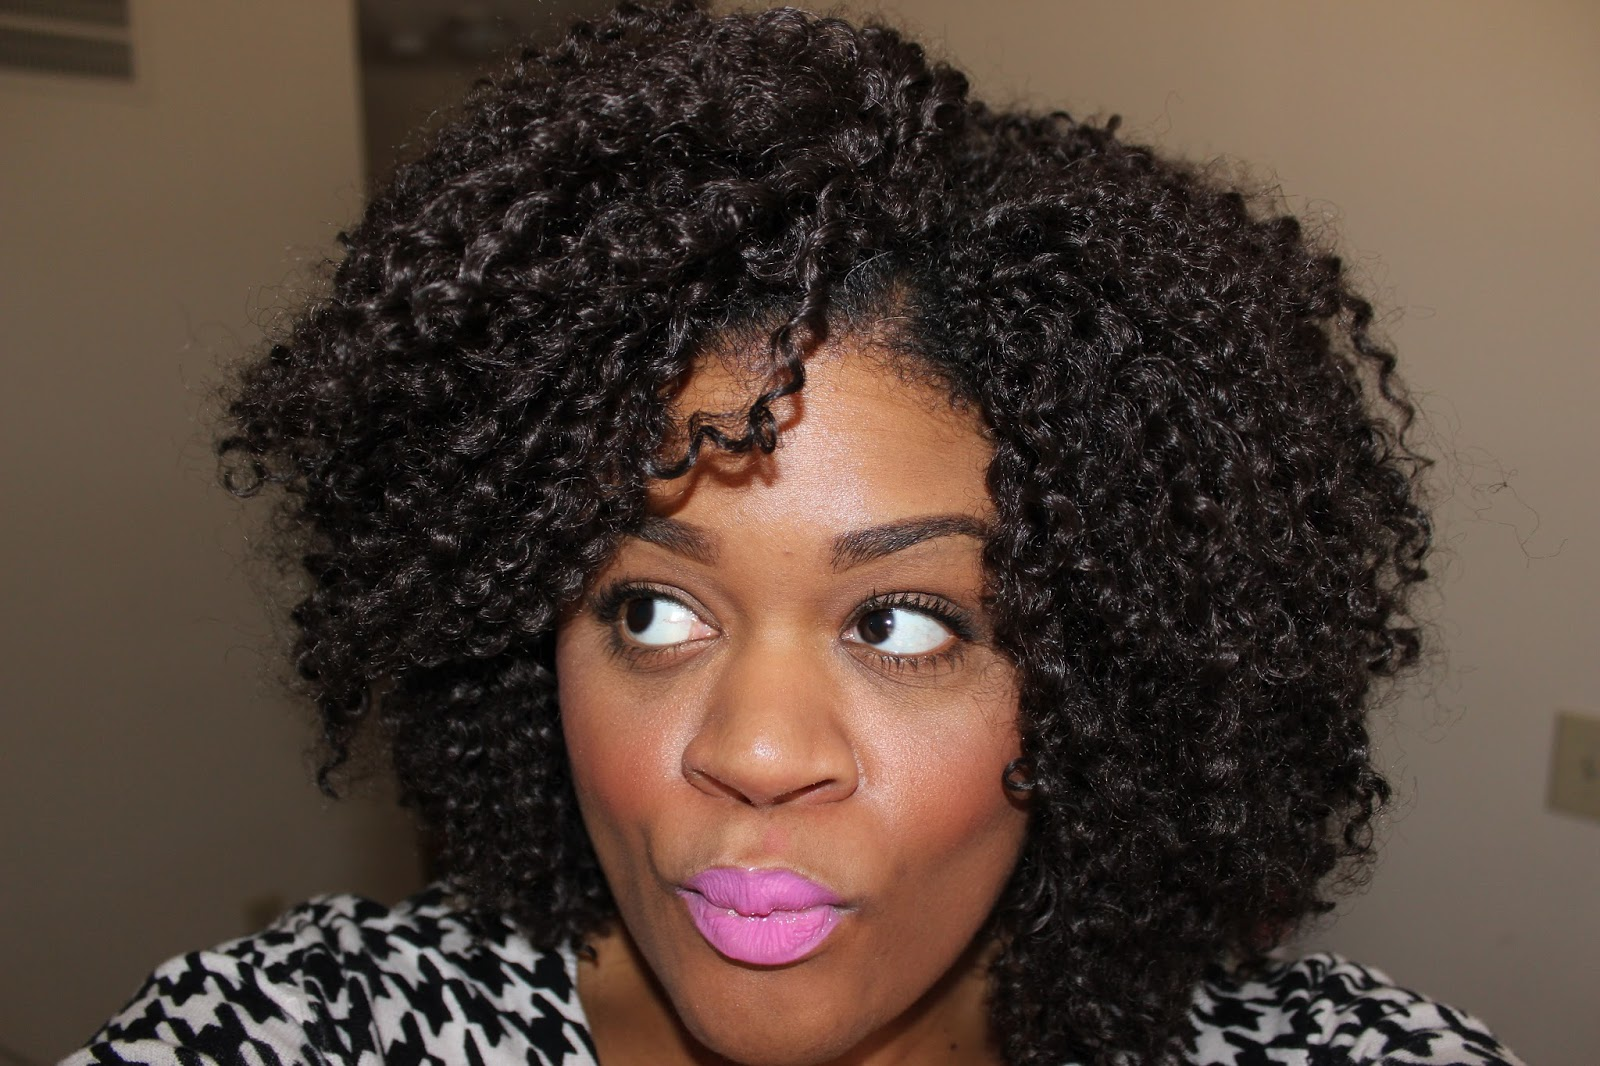 Crochet Hair Nairobi : FabEllis: Natural Hair How I Maintain My Crochet Braids